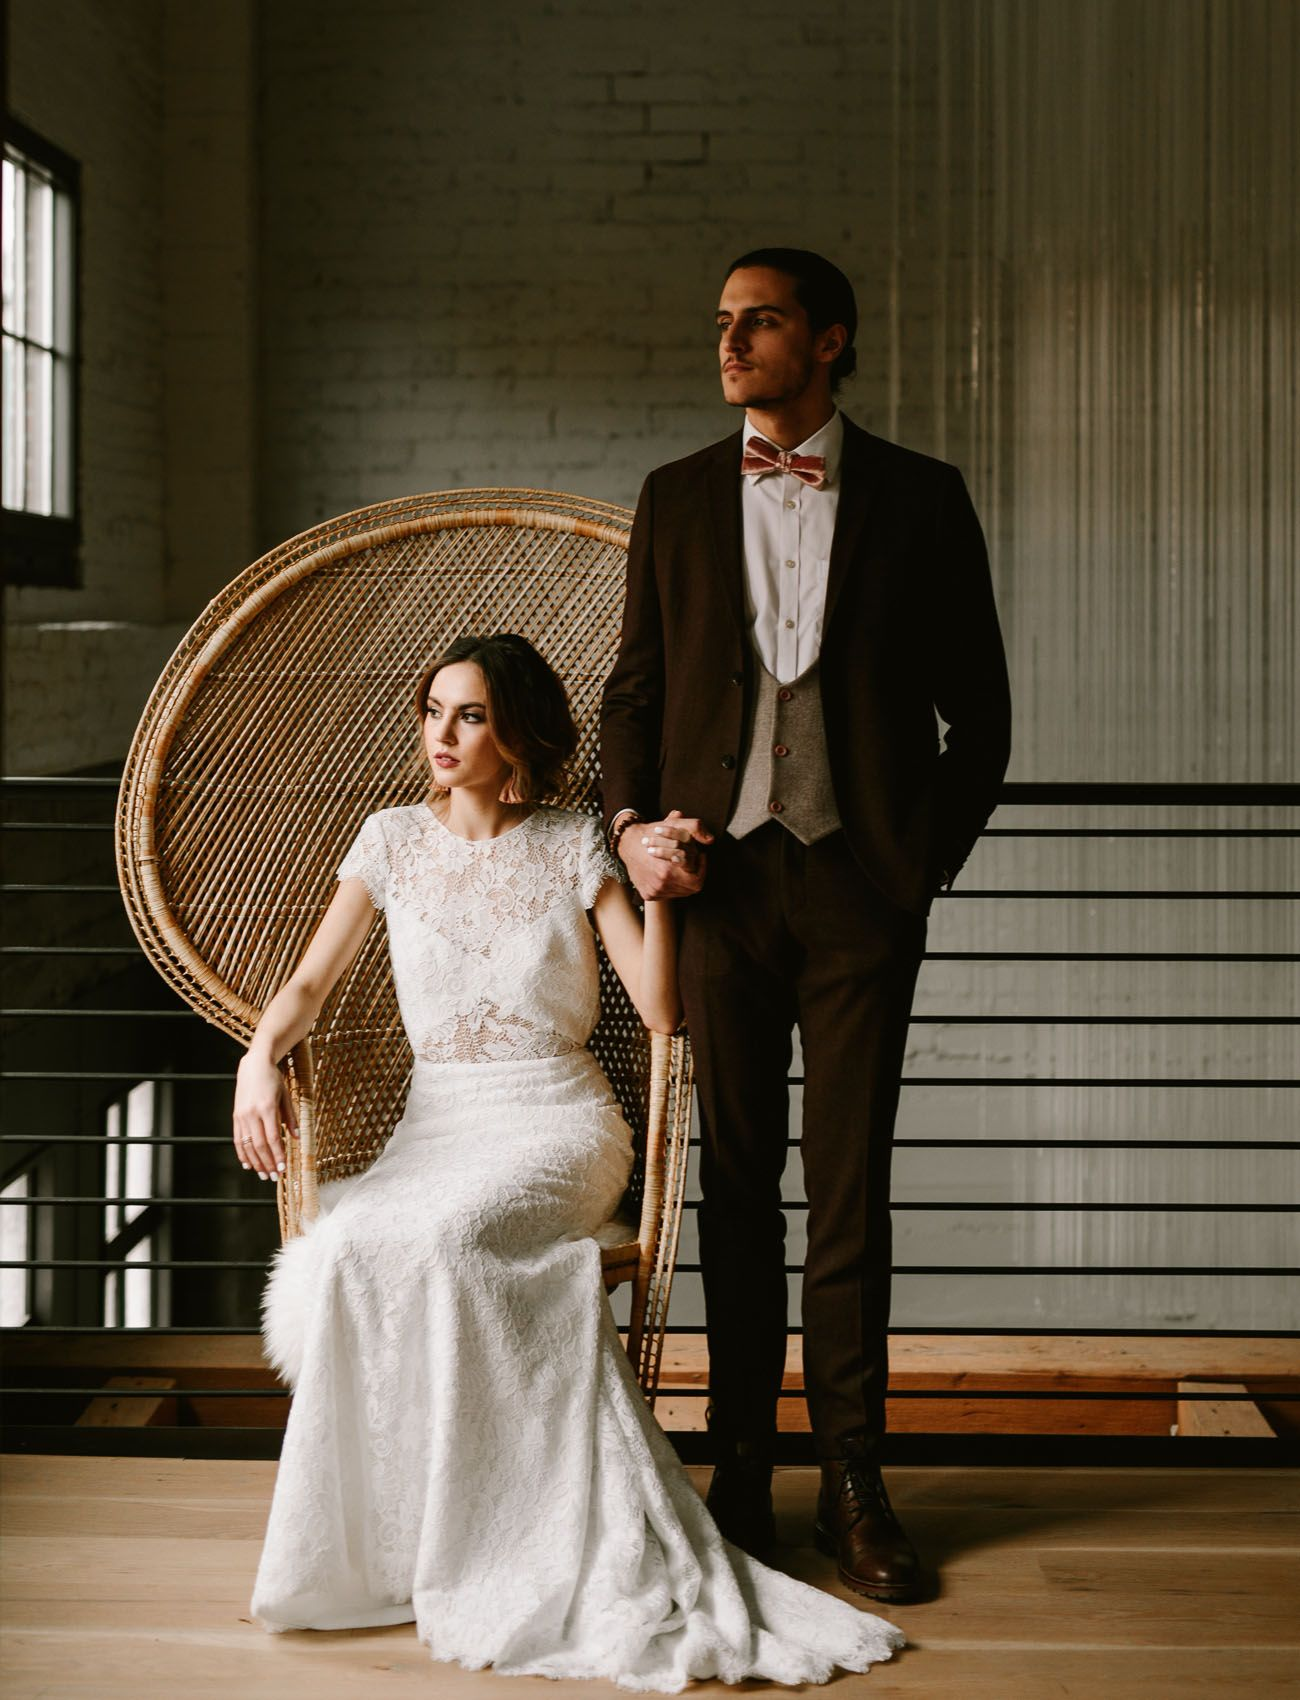 Leather wedding dress  Moody  Elegant Wedding Inspiration with Accents of Leather  Velvet